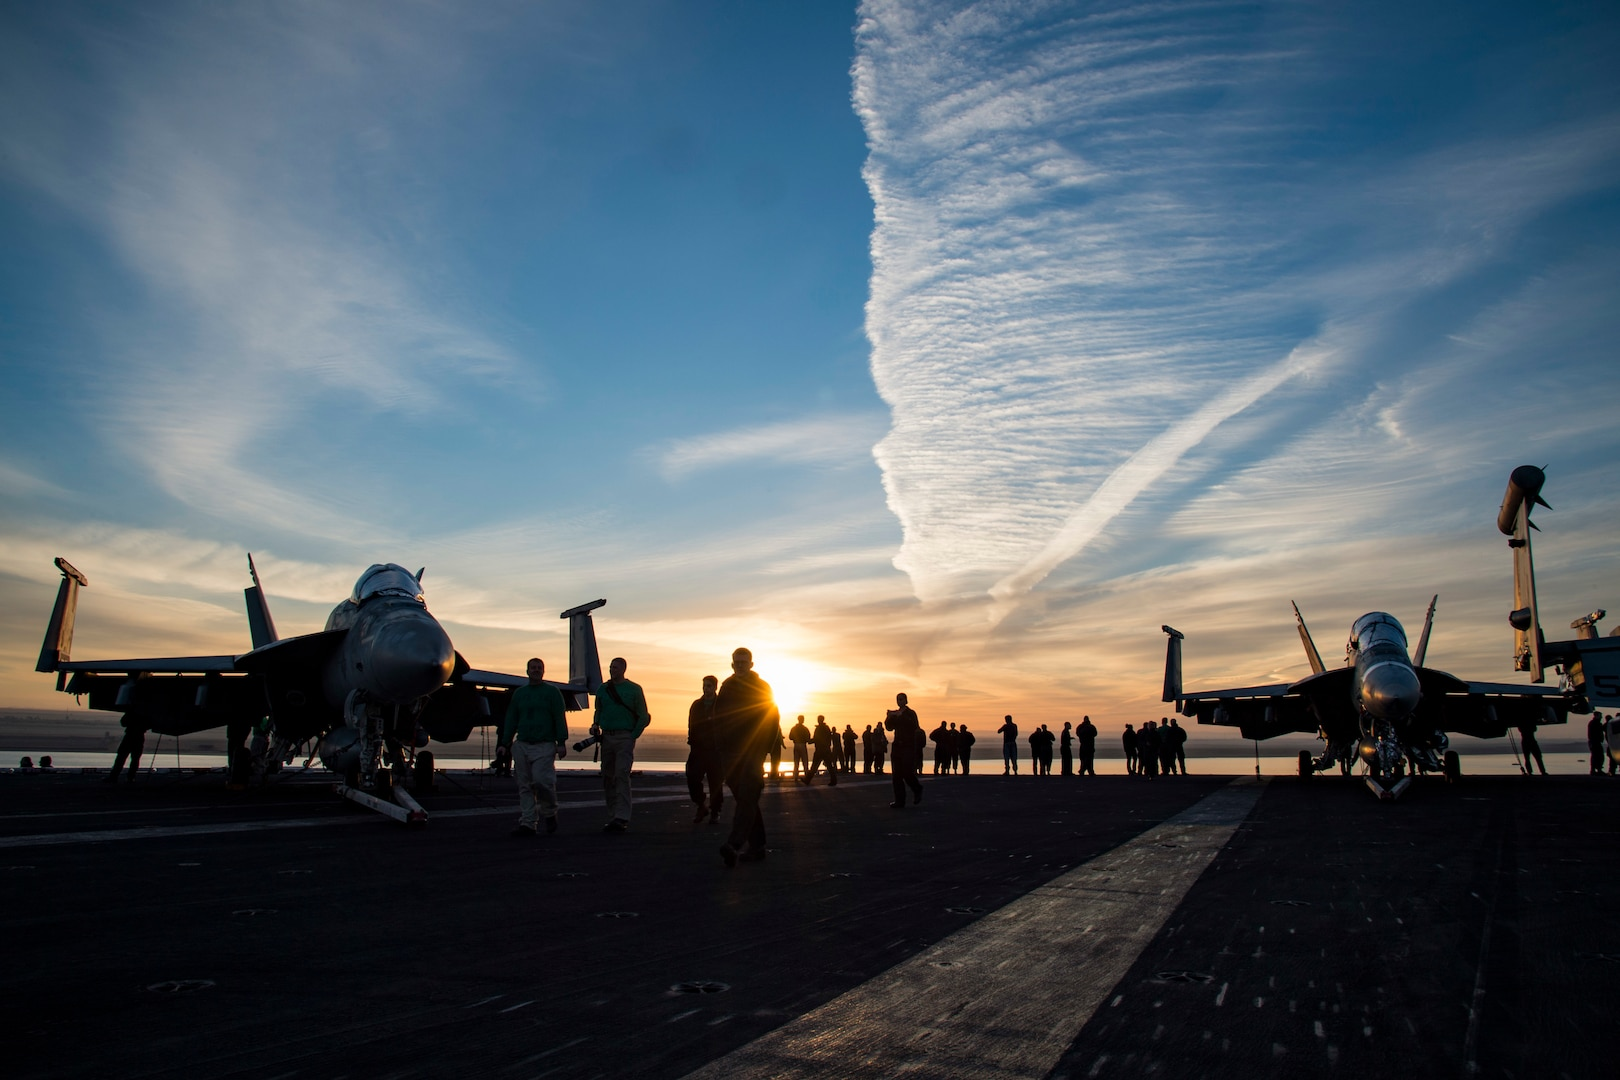 161204-N-QI061-027 SUEZ CANAL (Dec. 4, 2016) Sailors walk across the flight deck of the aircraft carrier USS Dwight D. Eisenhower (CVN 69) conducts a routine, scheduled transit through the Suez Canal. The ship and its carrier strike group are deployed in support of Operation Inherent Resolve, maritime security operations and theater security cooperation efforts in the U.S. 5th Fleet area of operations. (U.S. Navy photo by Petty Officer 3rd Class Nathan T. Beard/Released)